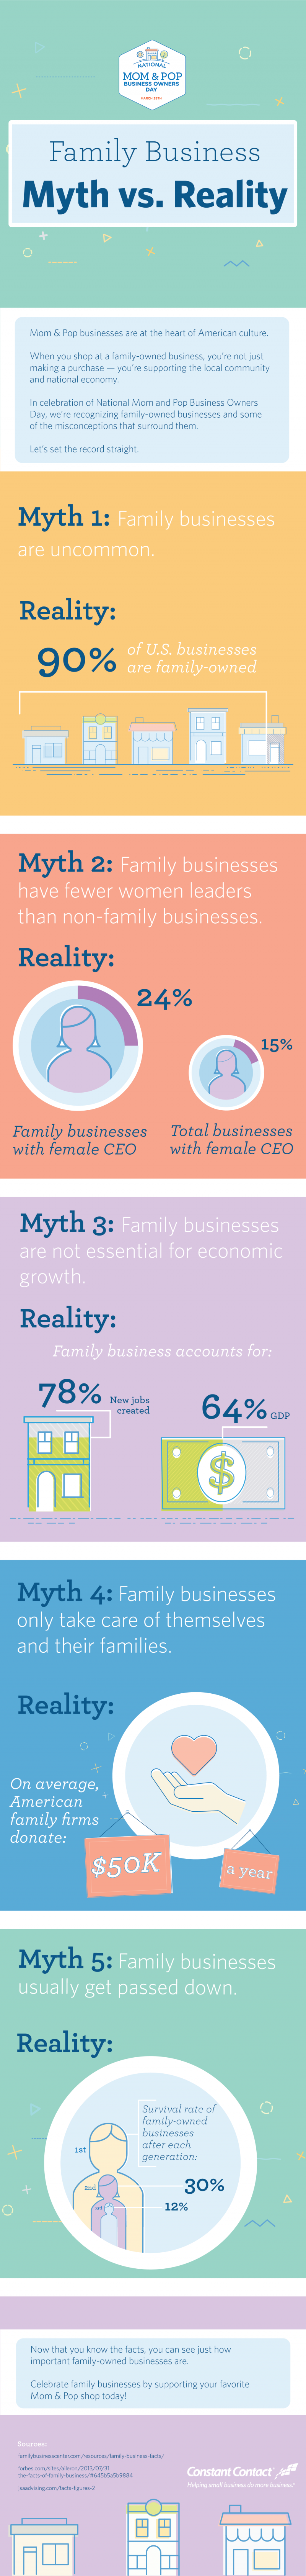 Family Business Statistics - Infographic